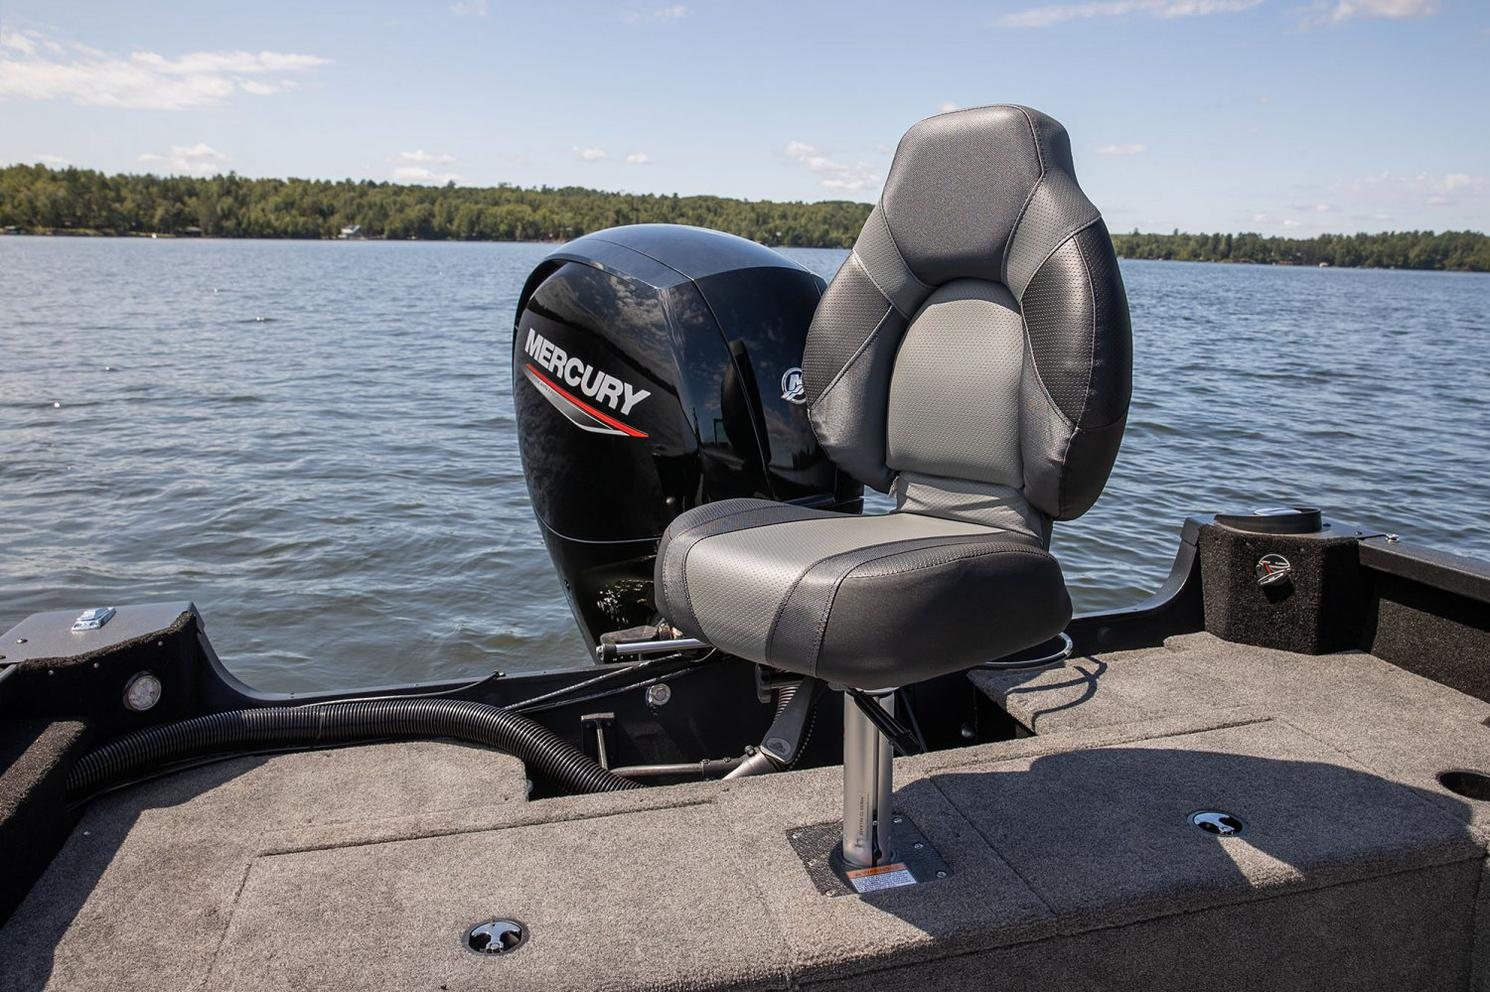 2021 Alumacraft boat for sale, model of the boat is Alumacraft Competitor Shadow 205 Sport & Image # 5 of 8